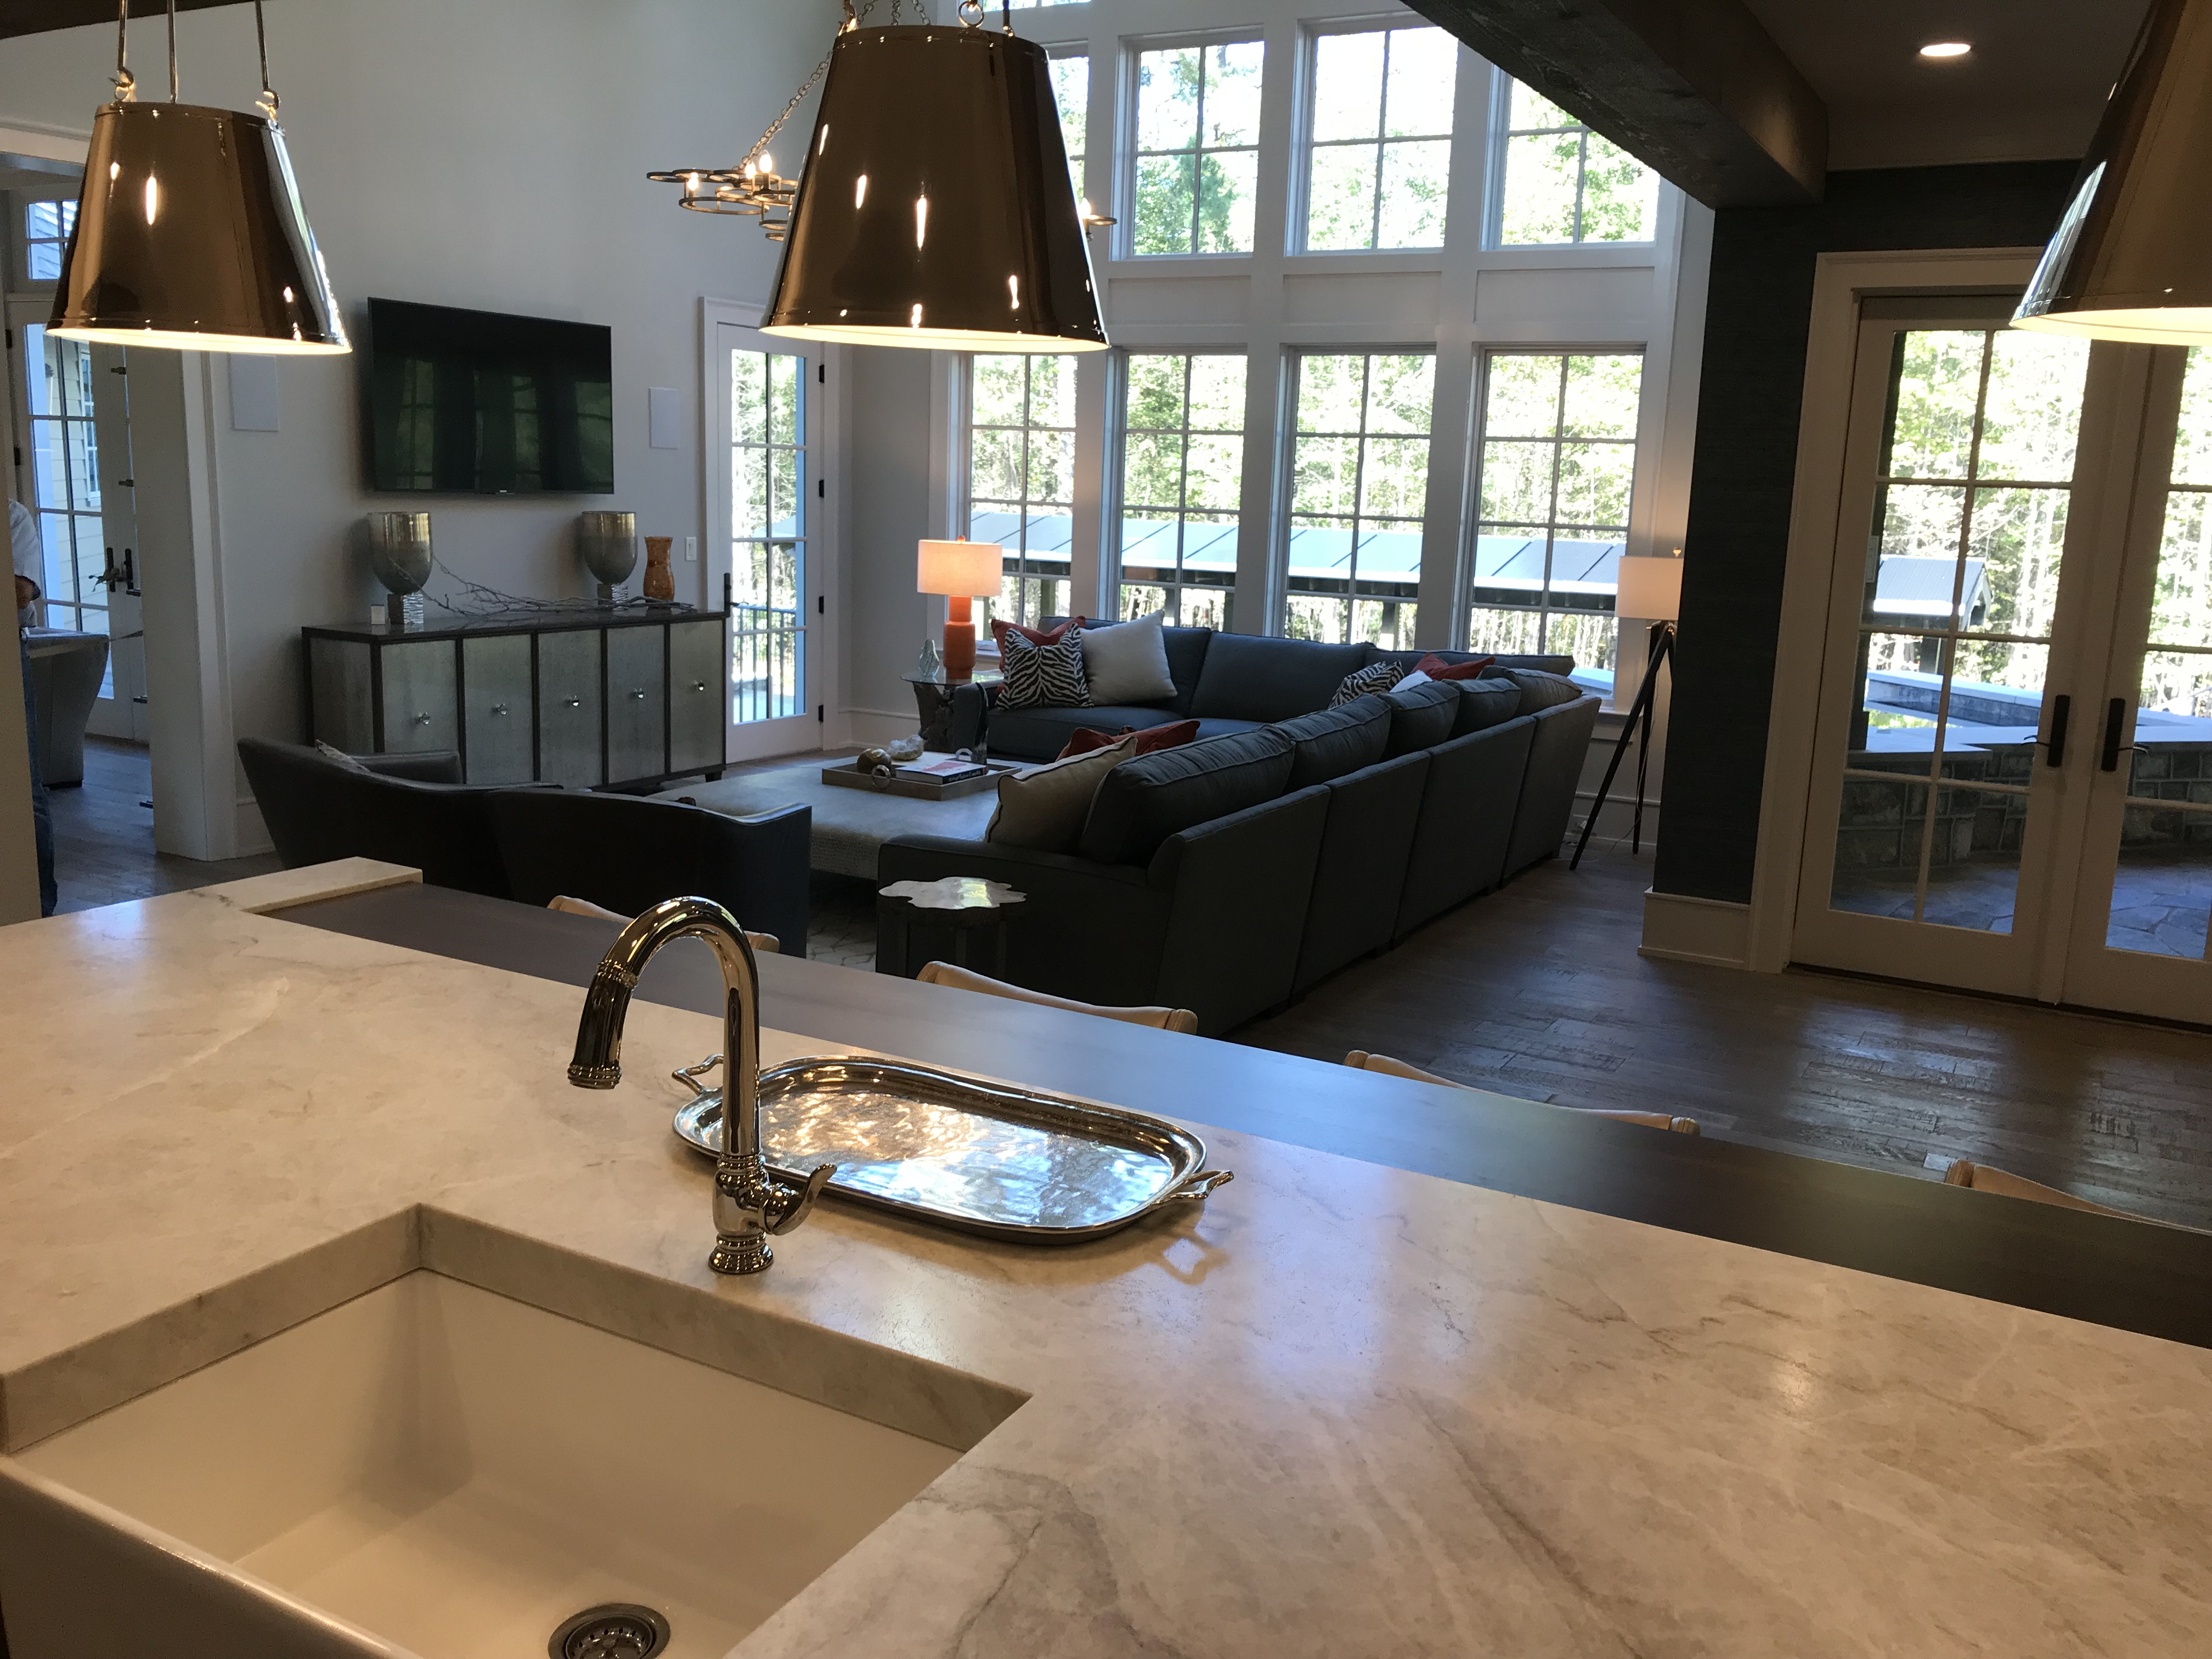 <div class='meta'><div class='origin-logo' data-origin='none'></div><span class='caption-text' data-credit='WTVD Photo/Shawn Replogle'>Kitchen - 5105 Avalaire Oaks Drive, Raleigh, NC - $3.2 million by Bost Custom Homes</span></div>